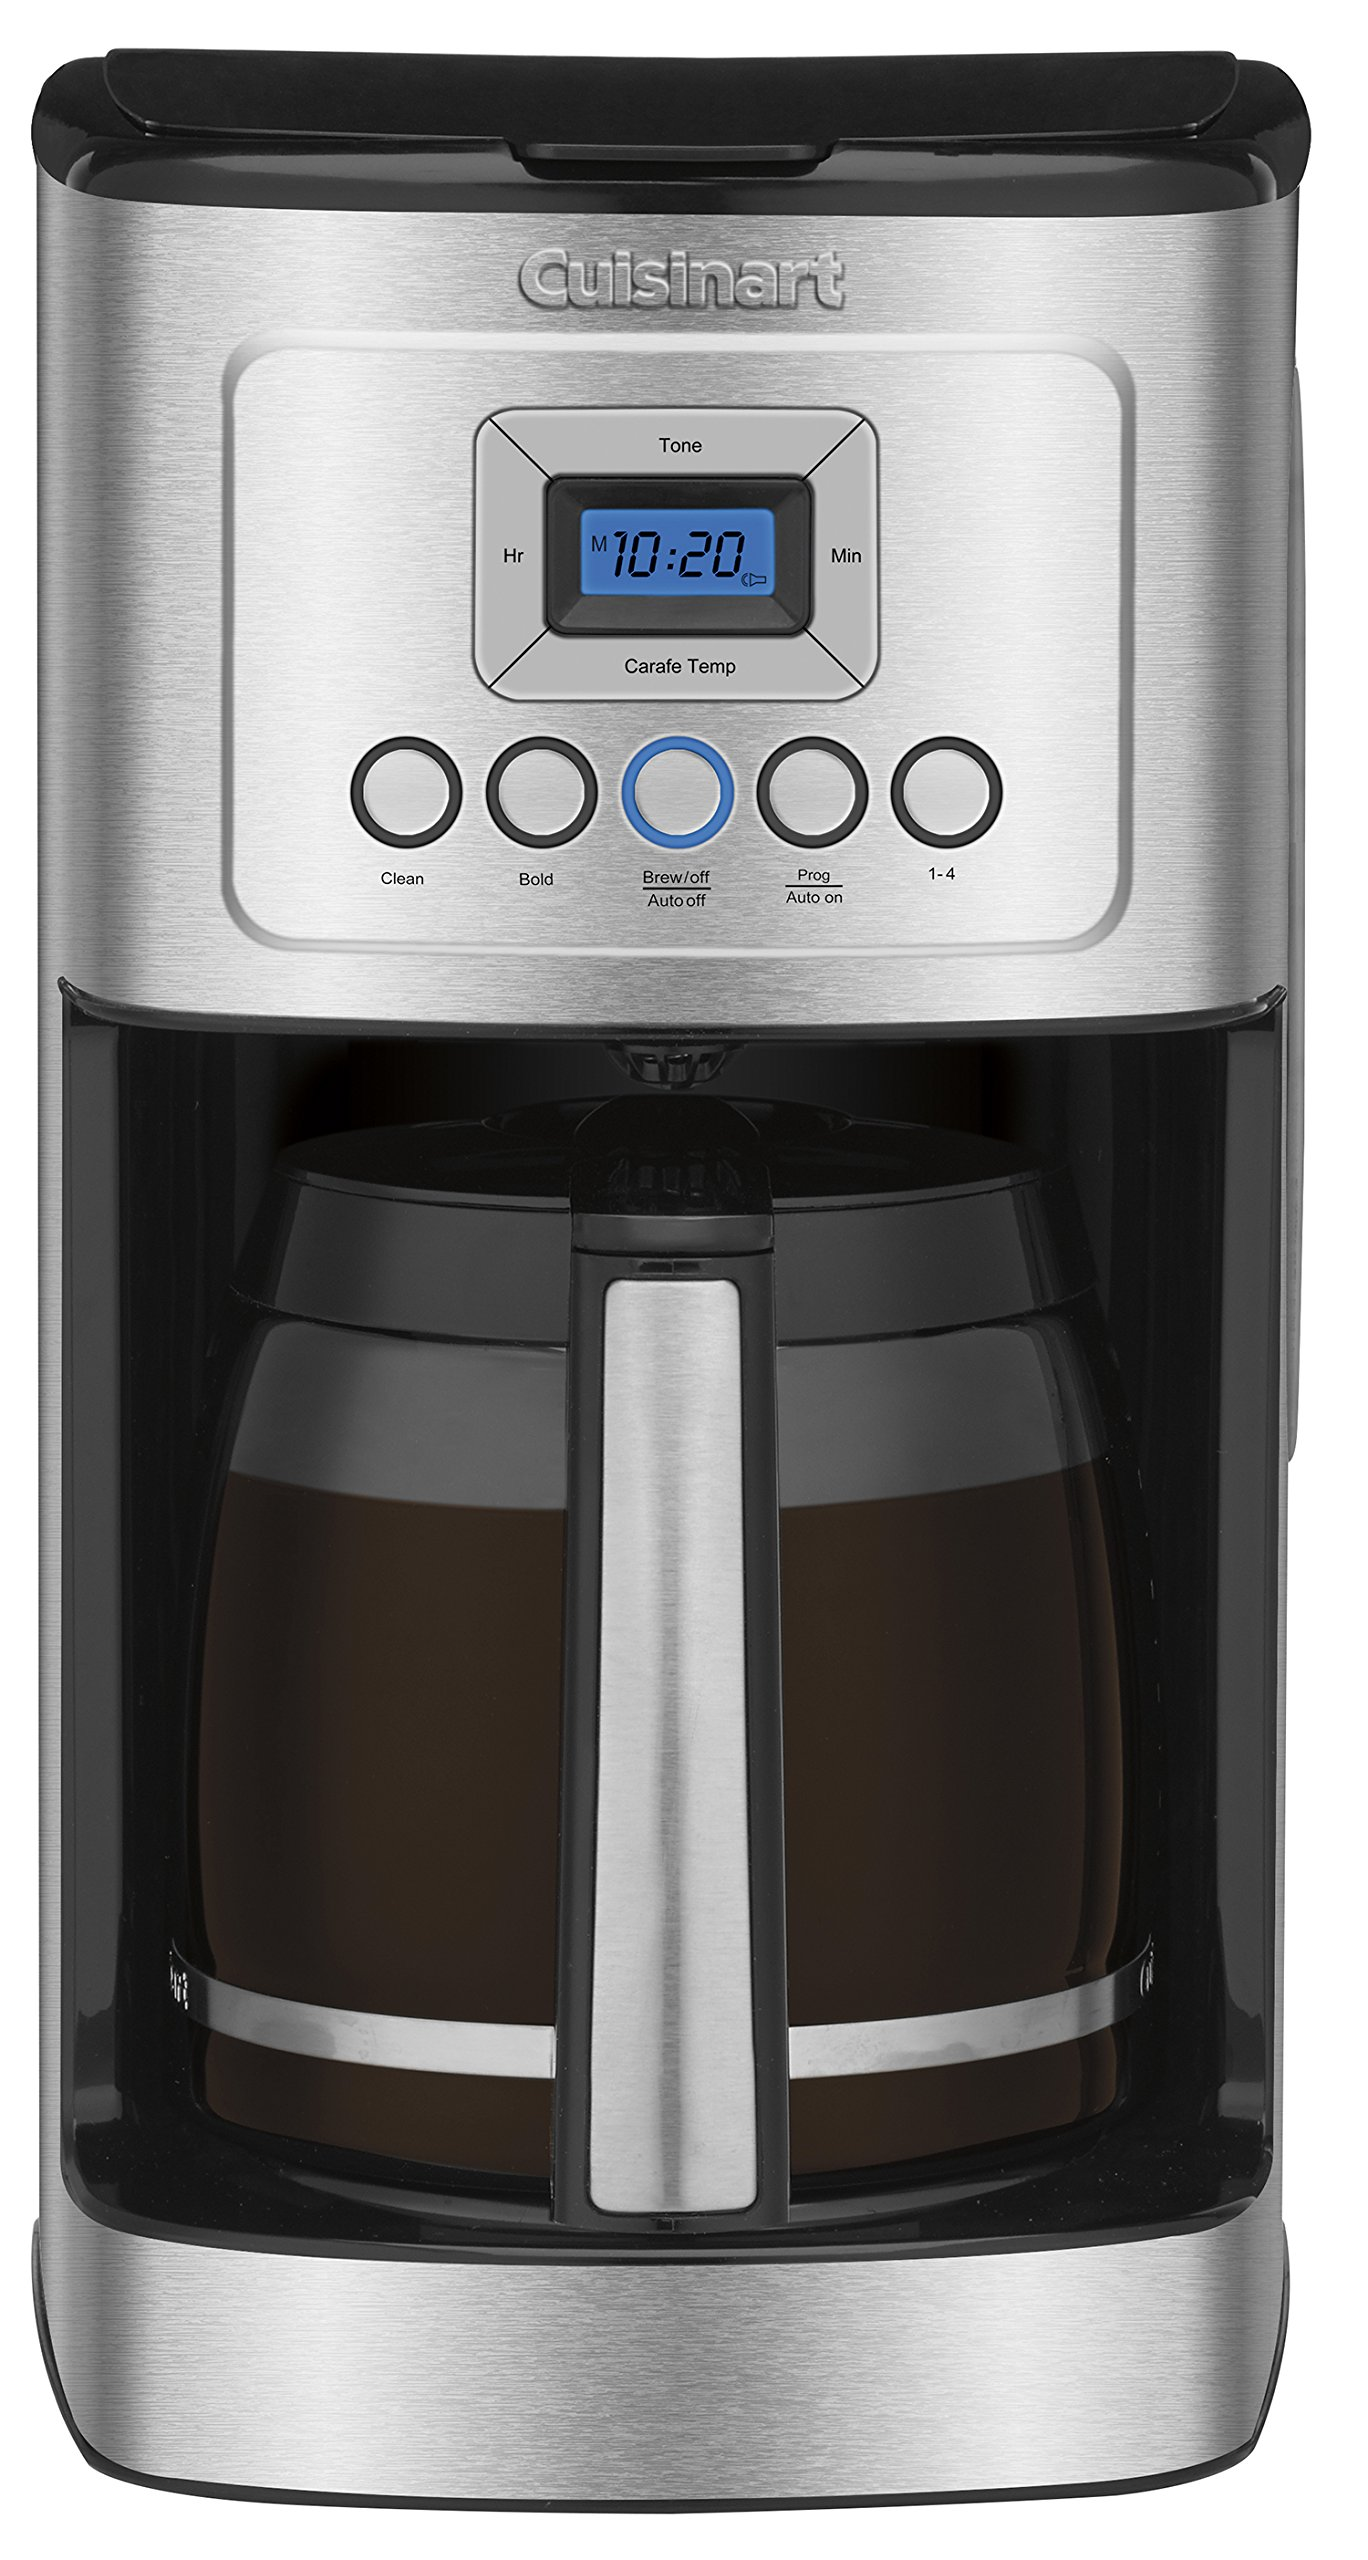 Cuisinart DCC-3200 PerfecTemp Programmable Coffeemaker, 14 Cup, Stainless Steel/Black